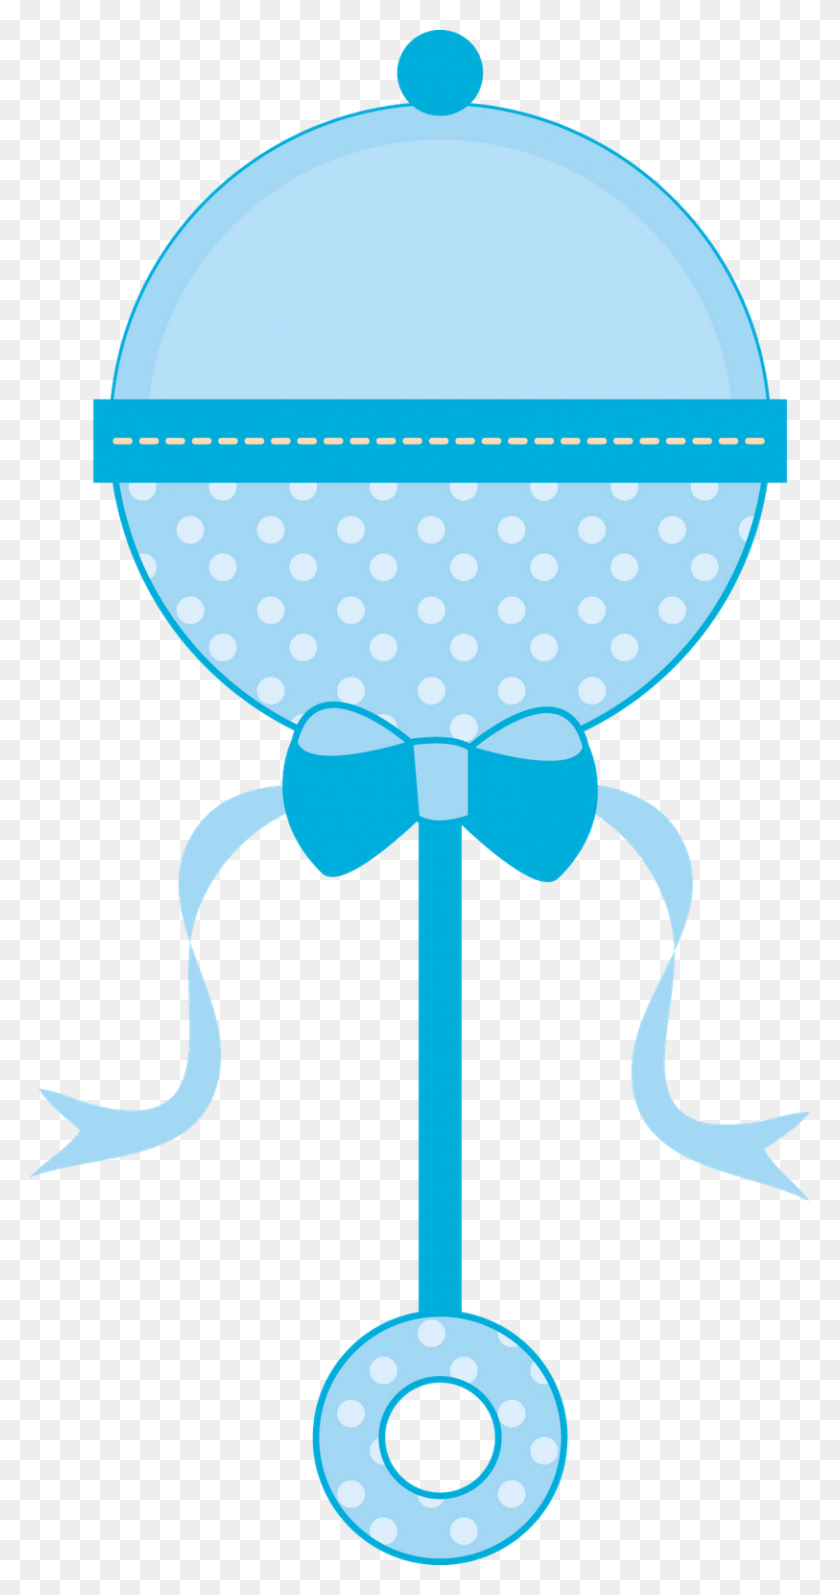 Baby Shower Its A Girl Png Transparent Baby Shower Its A Girl - Foil Clipart